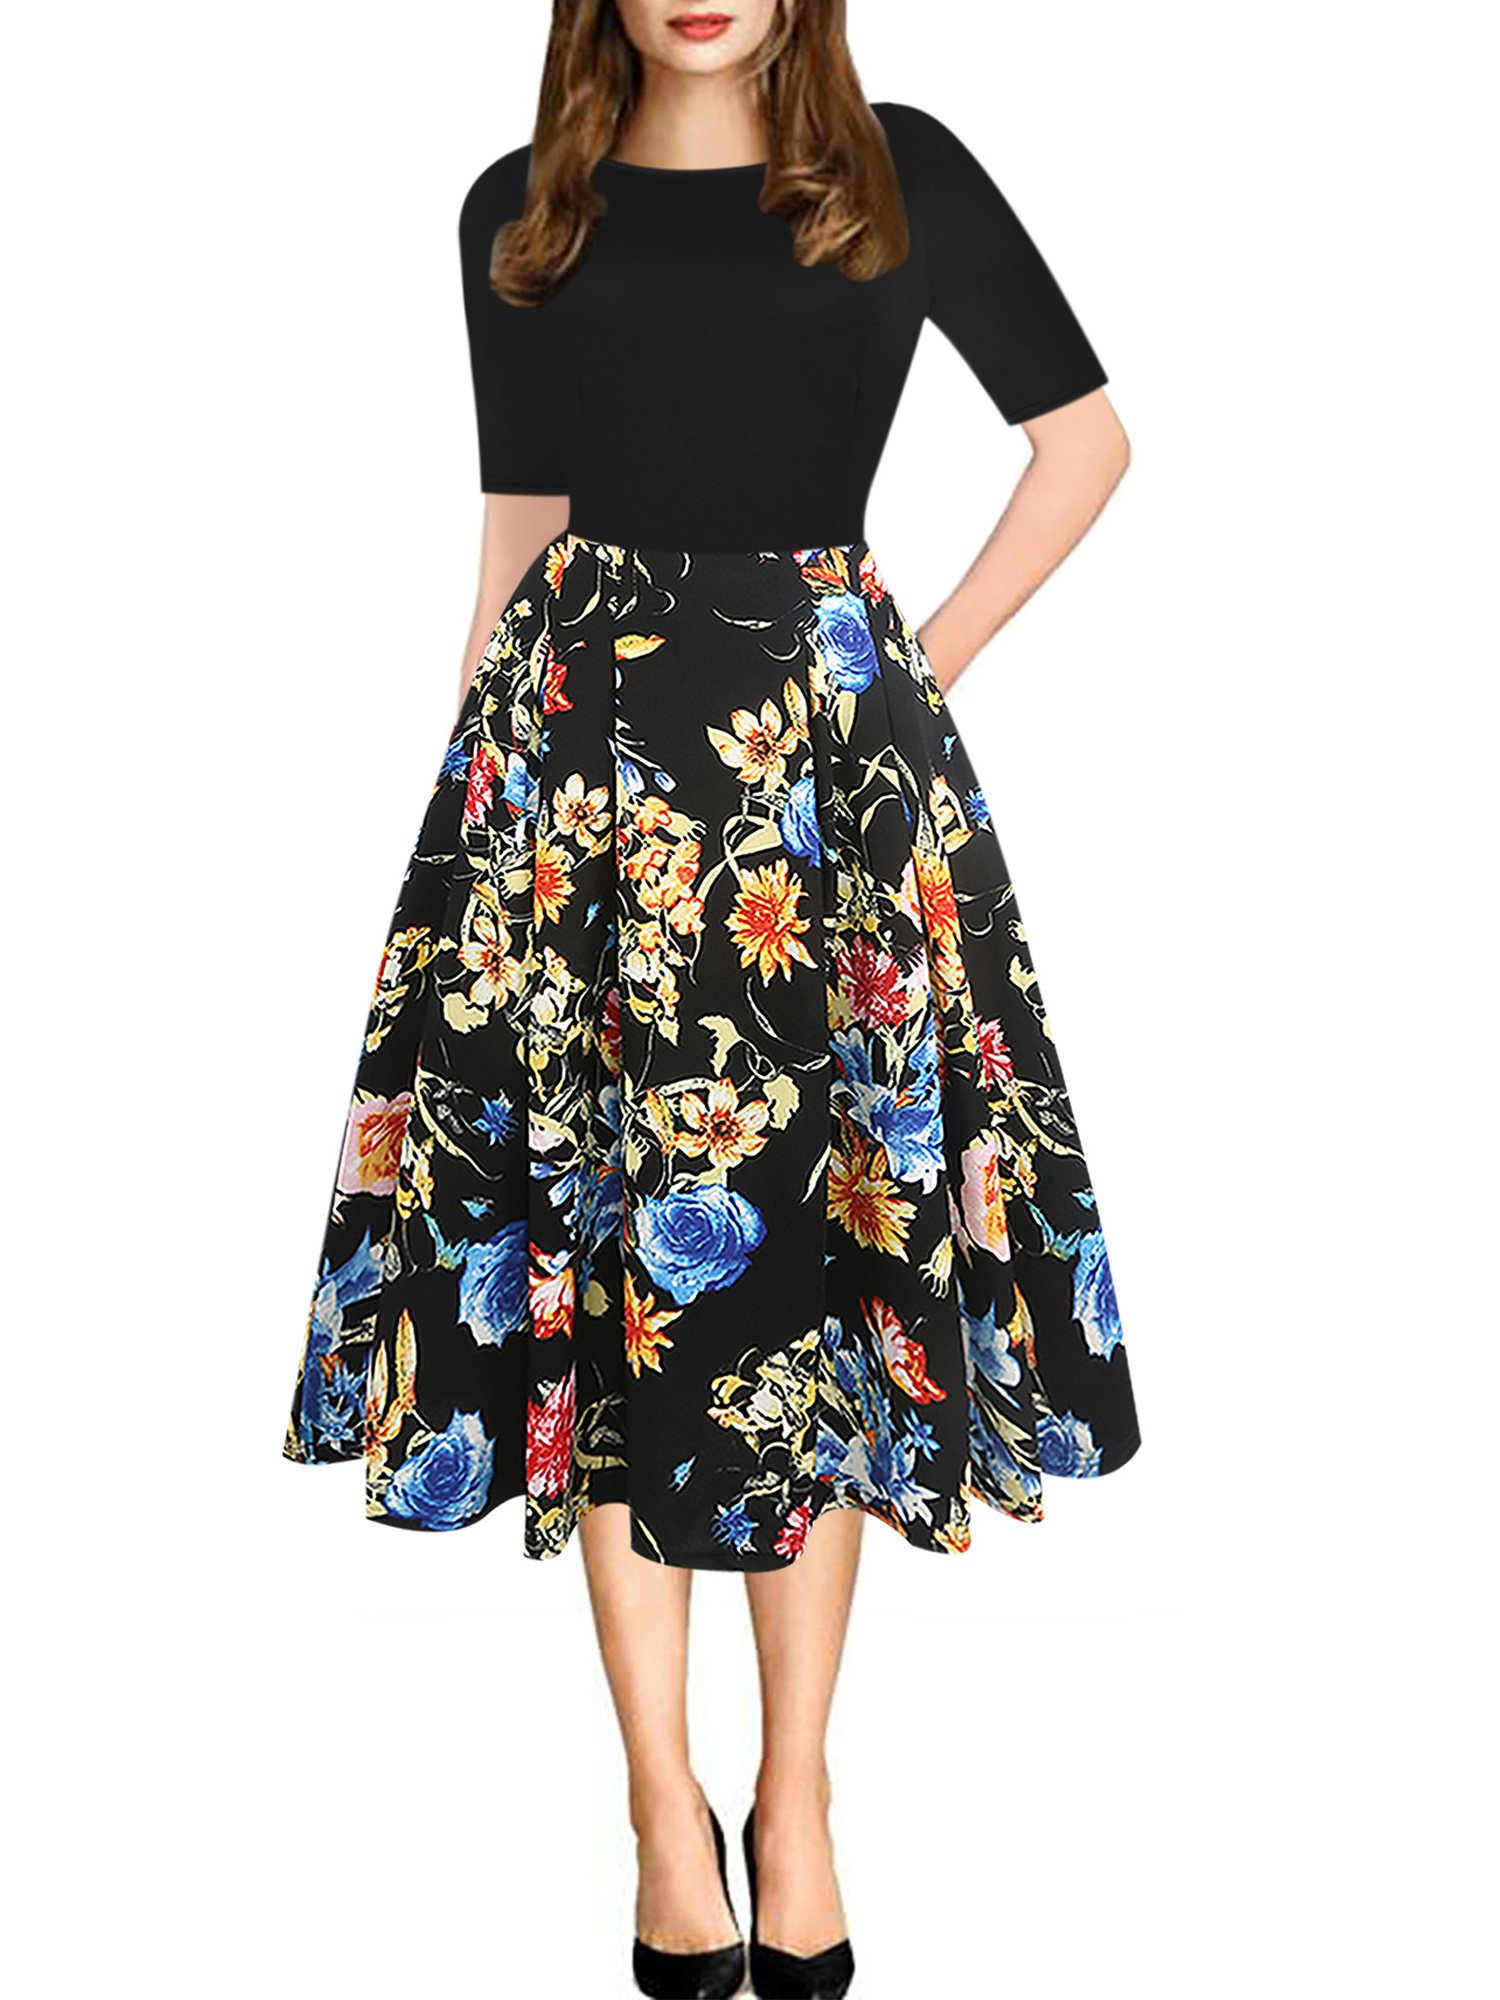 oxiuly Women's Vintage Patchwork Pockets Puffy Swing Casual Party Dress OX165 (M, Black Floral)